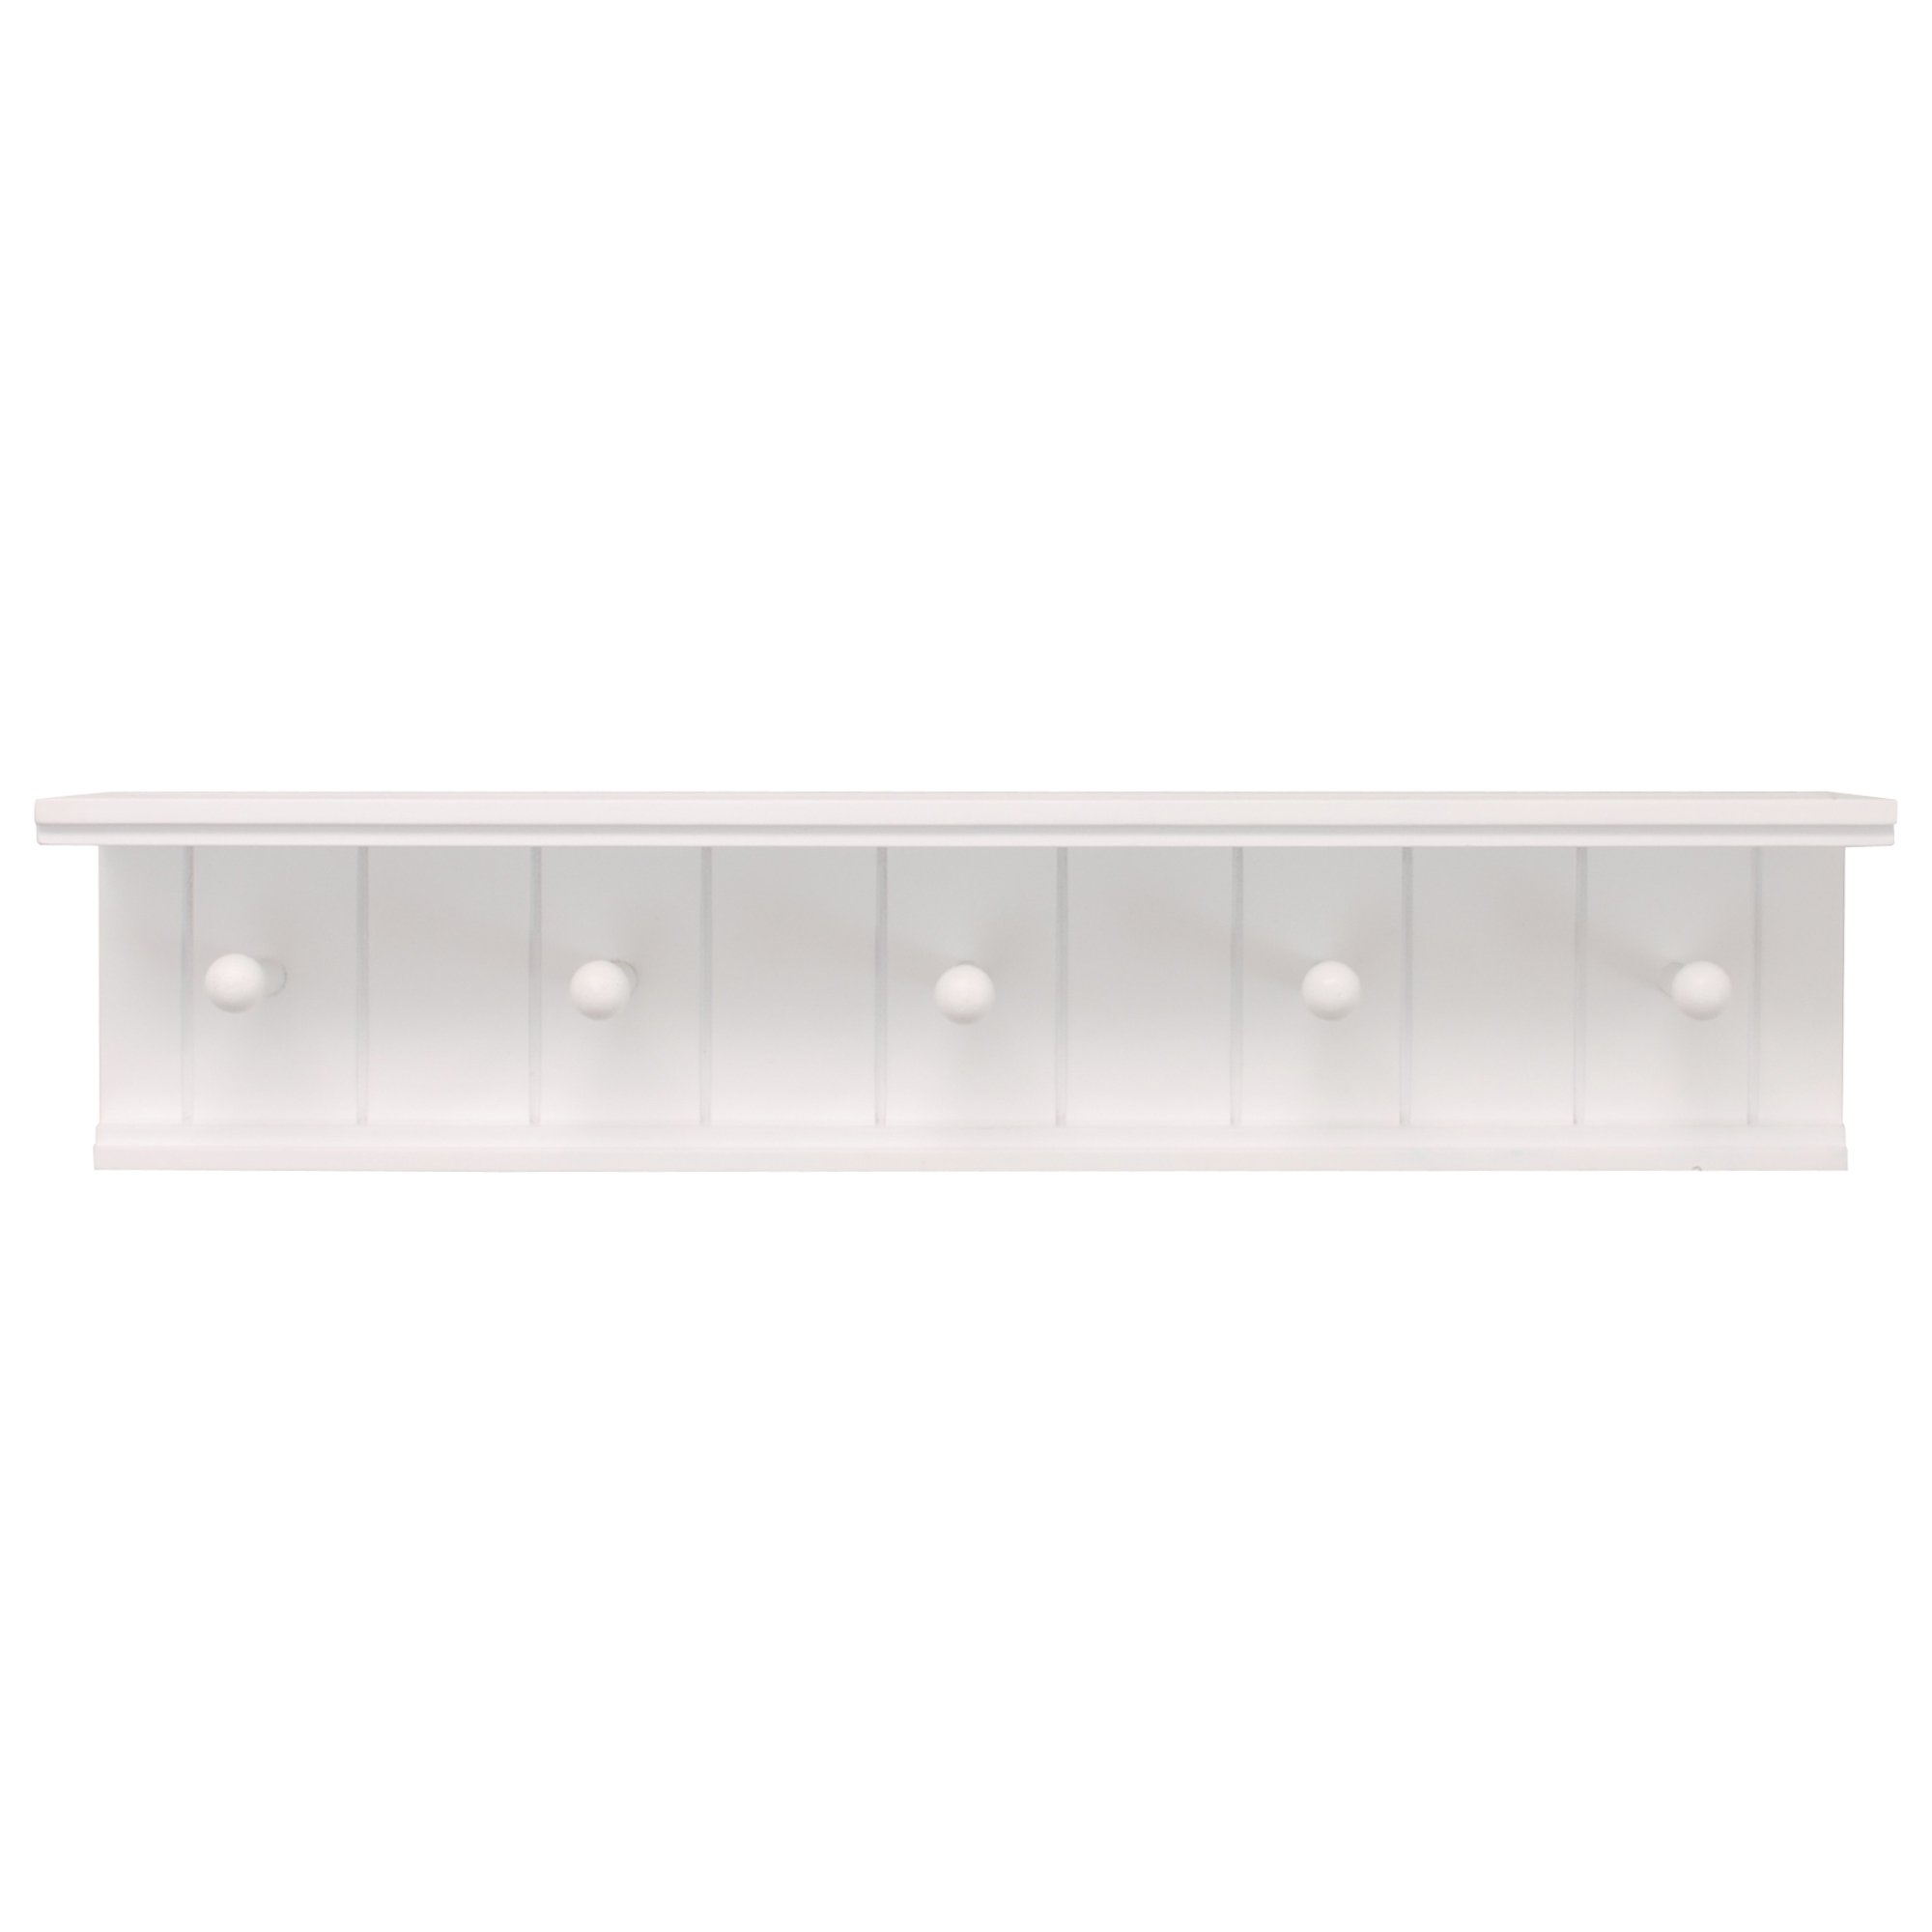 Kiera Grace Kian Wall Shelf with 5 Pegs, 24-Inch by 5-Inch, White by Kiera Grace